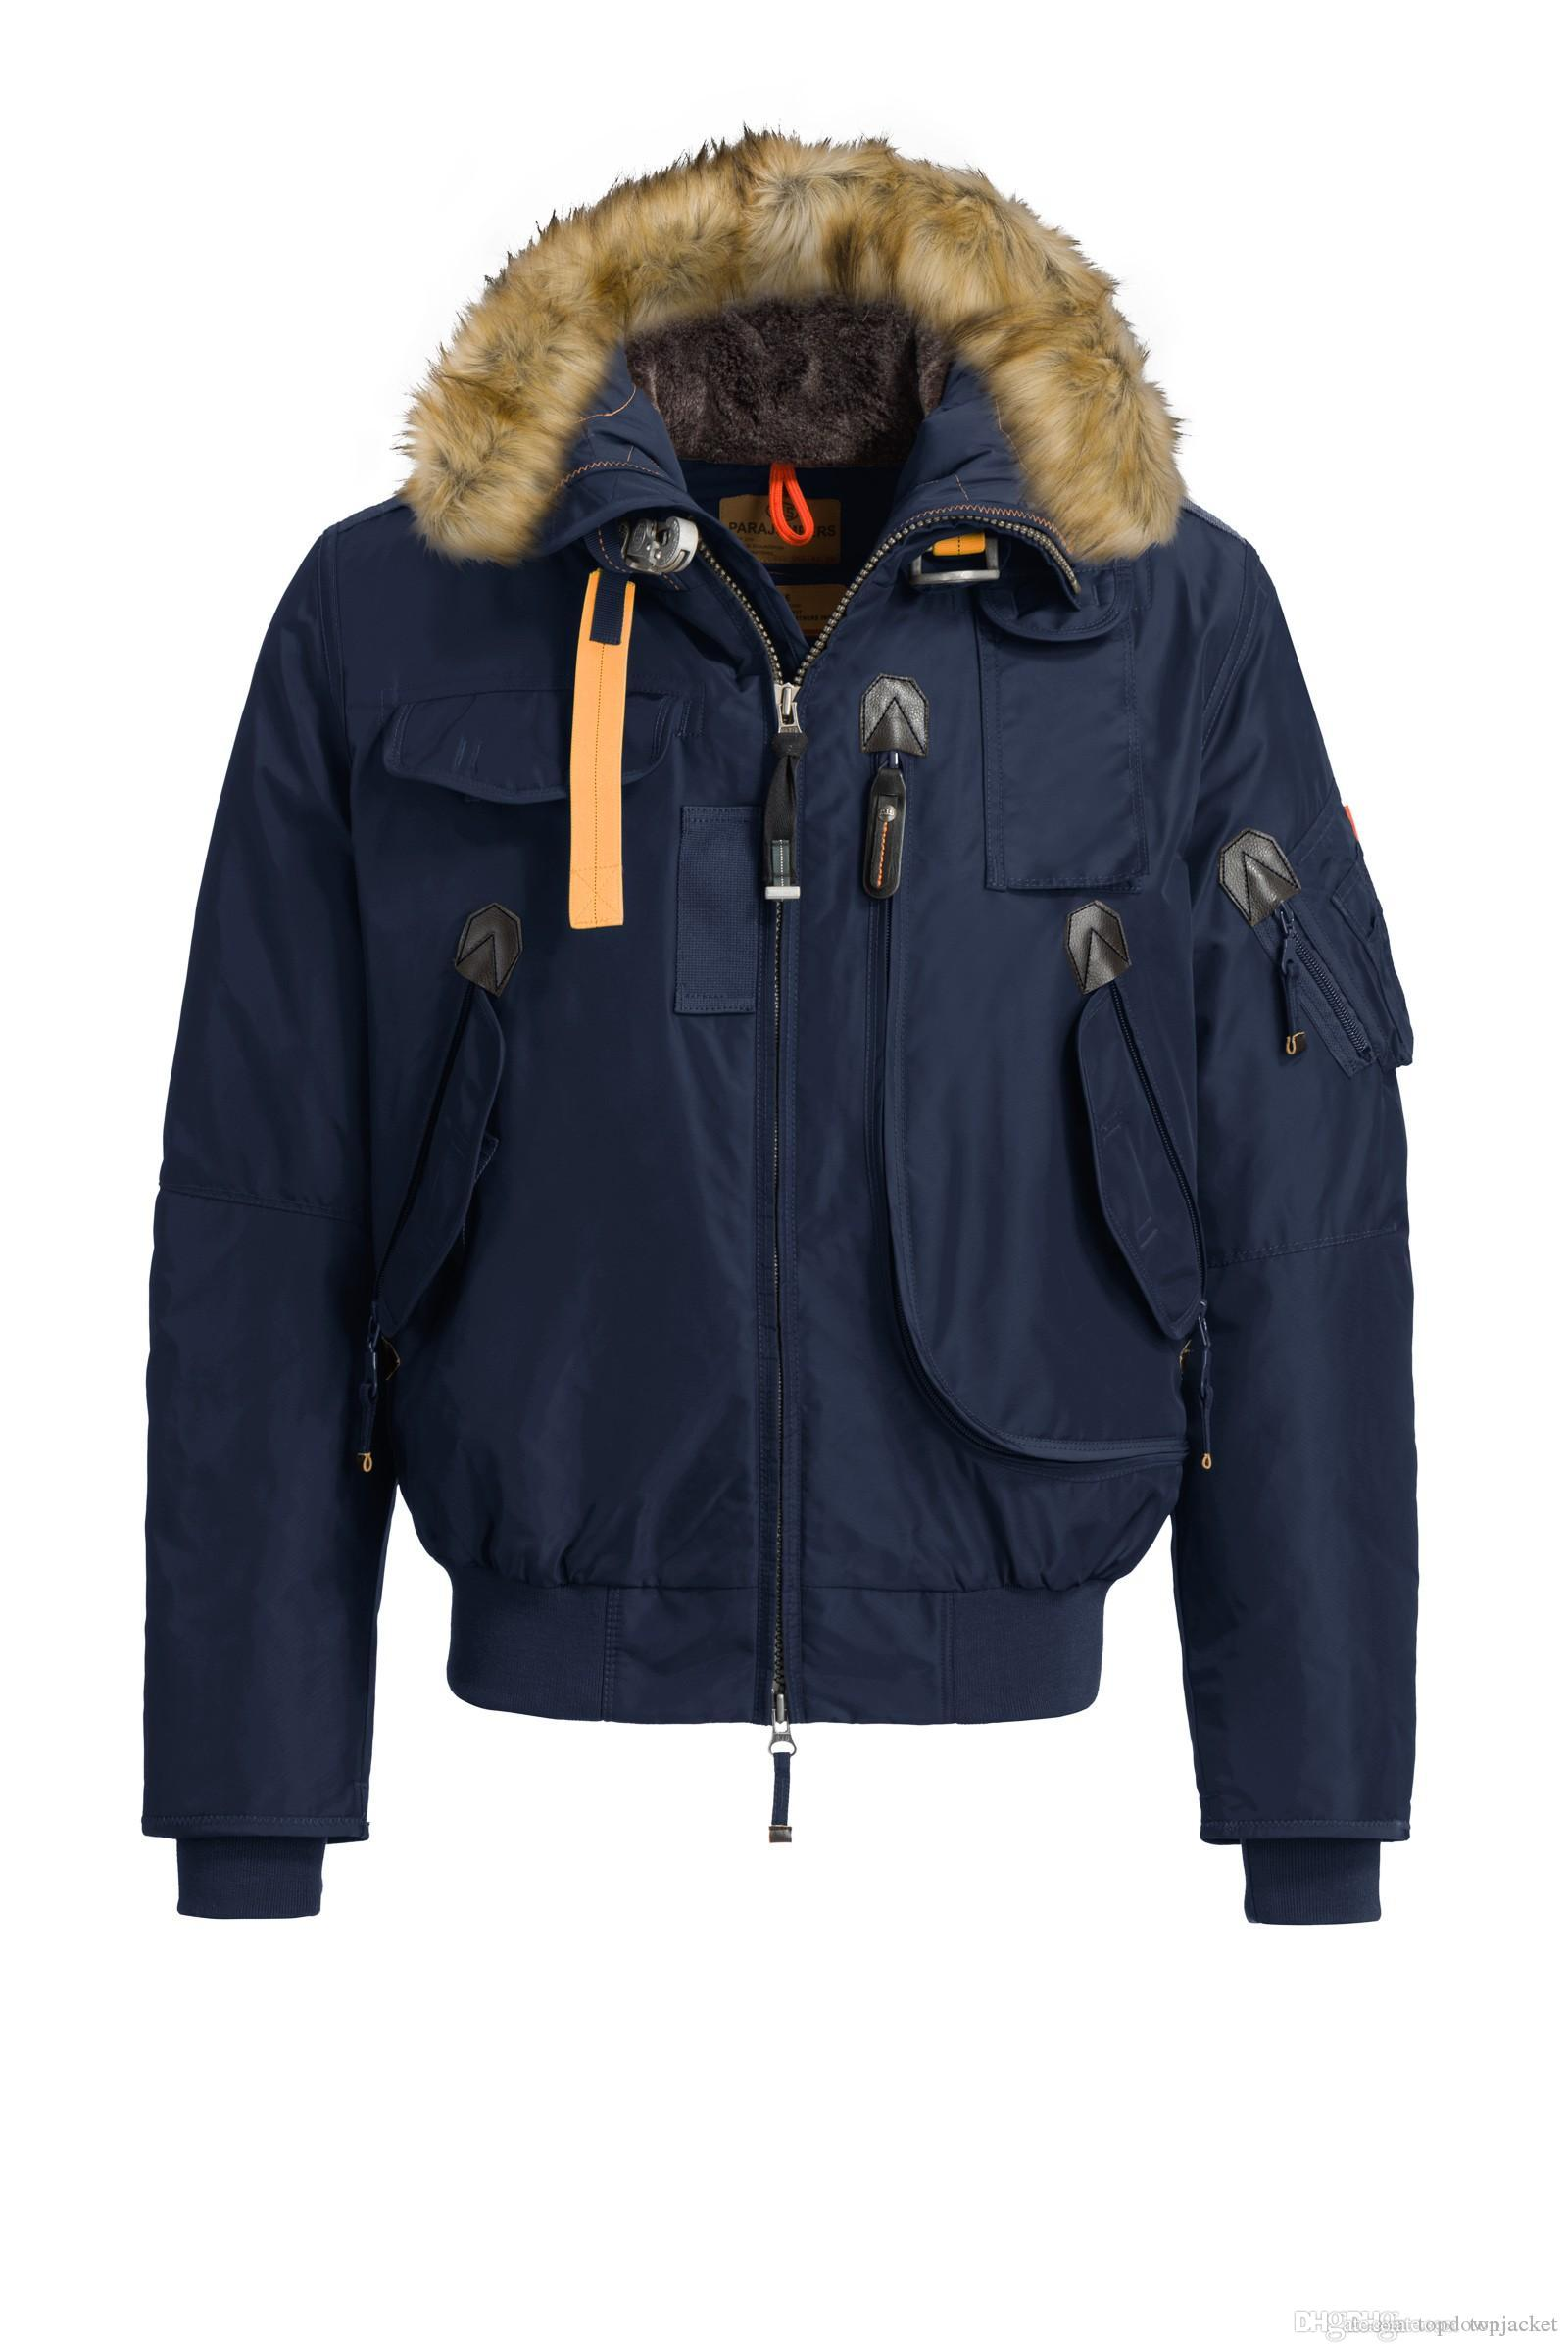 parajumpers sale jacket